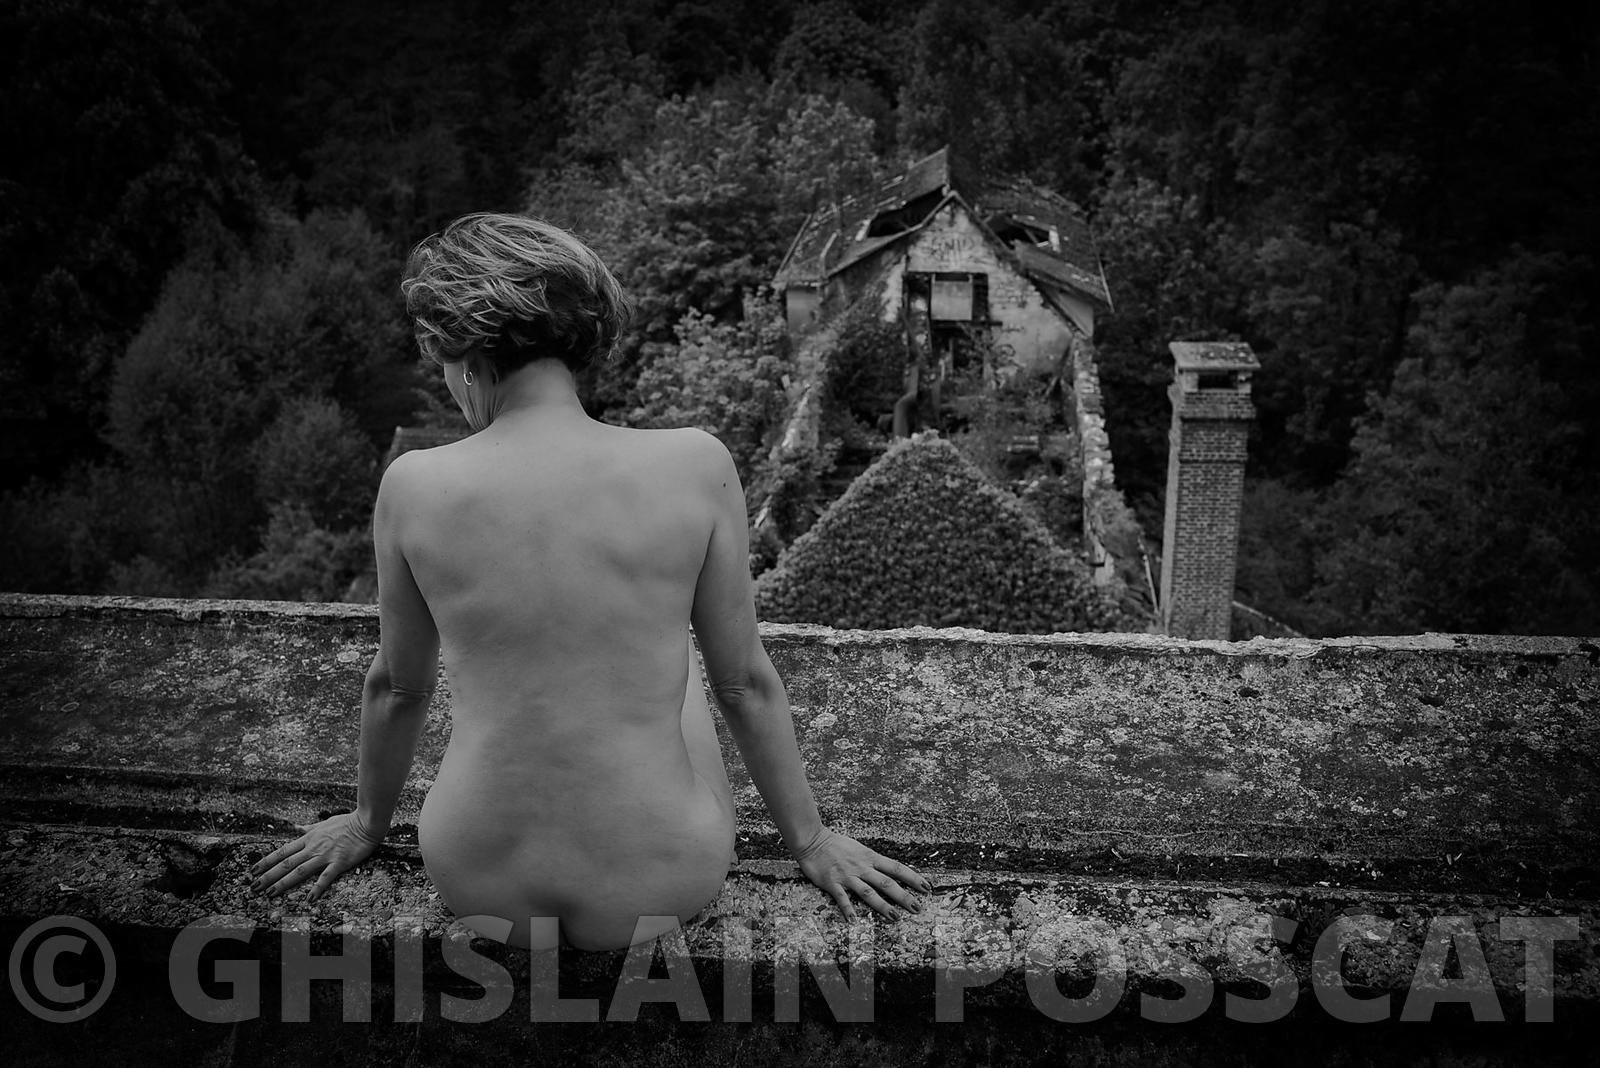 Nature takes her rights back- Ghislain posscat, erotic pictures, nude fine art, erotic photographer 2